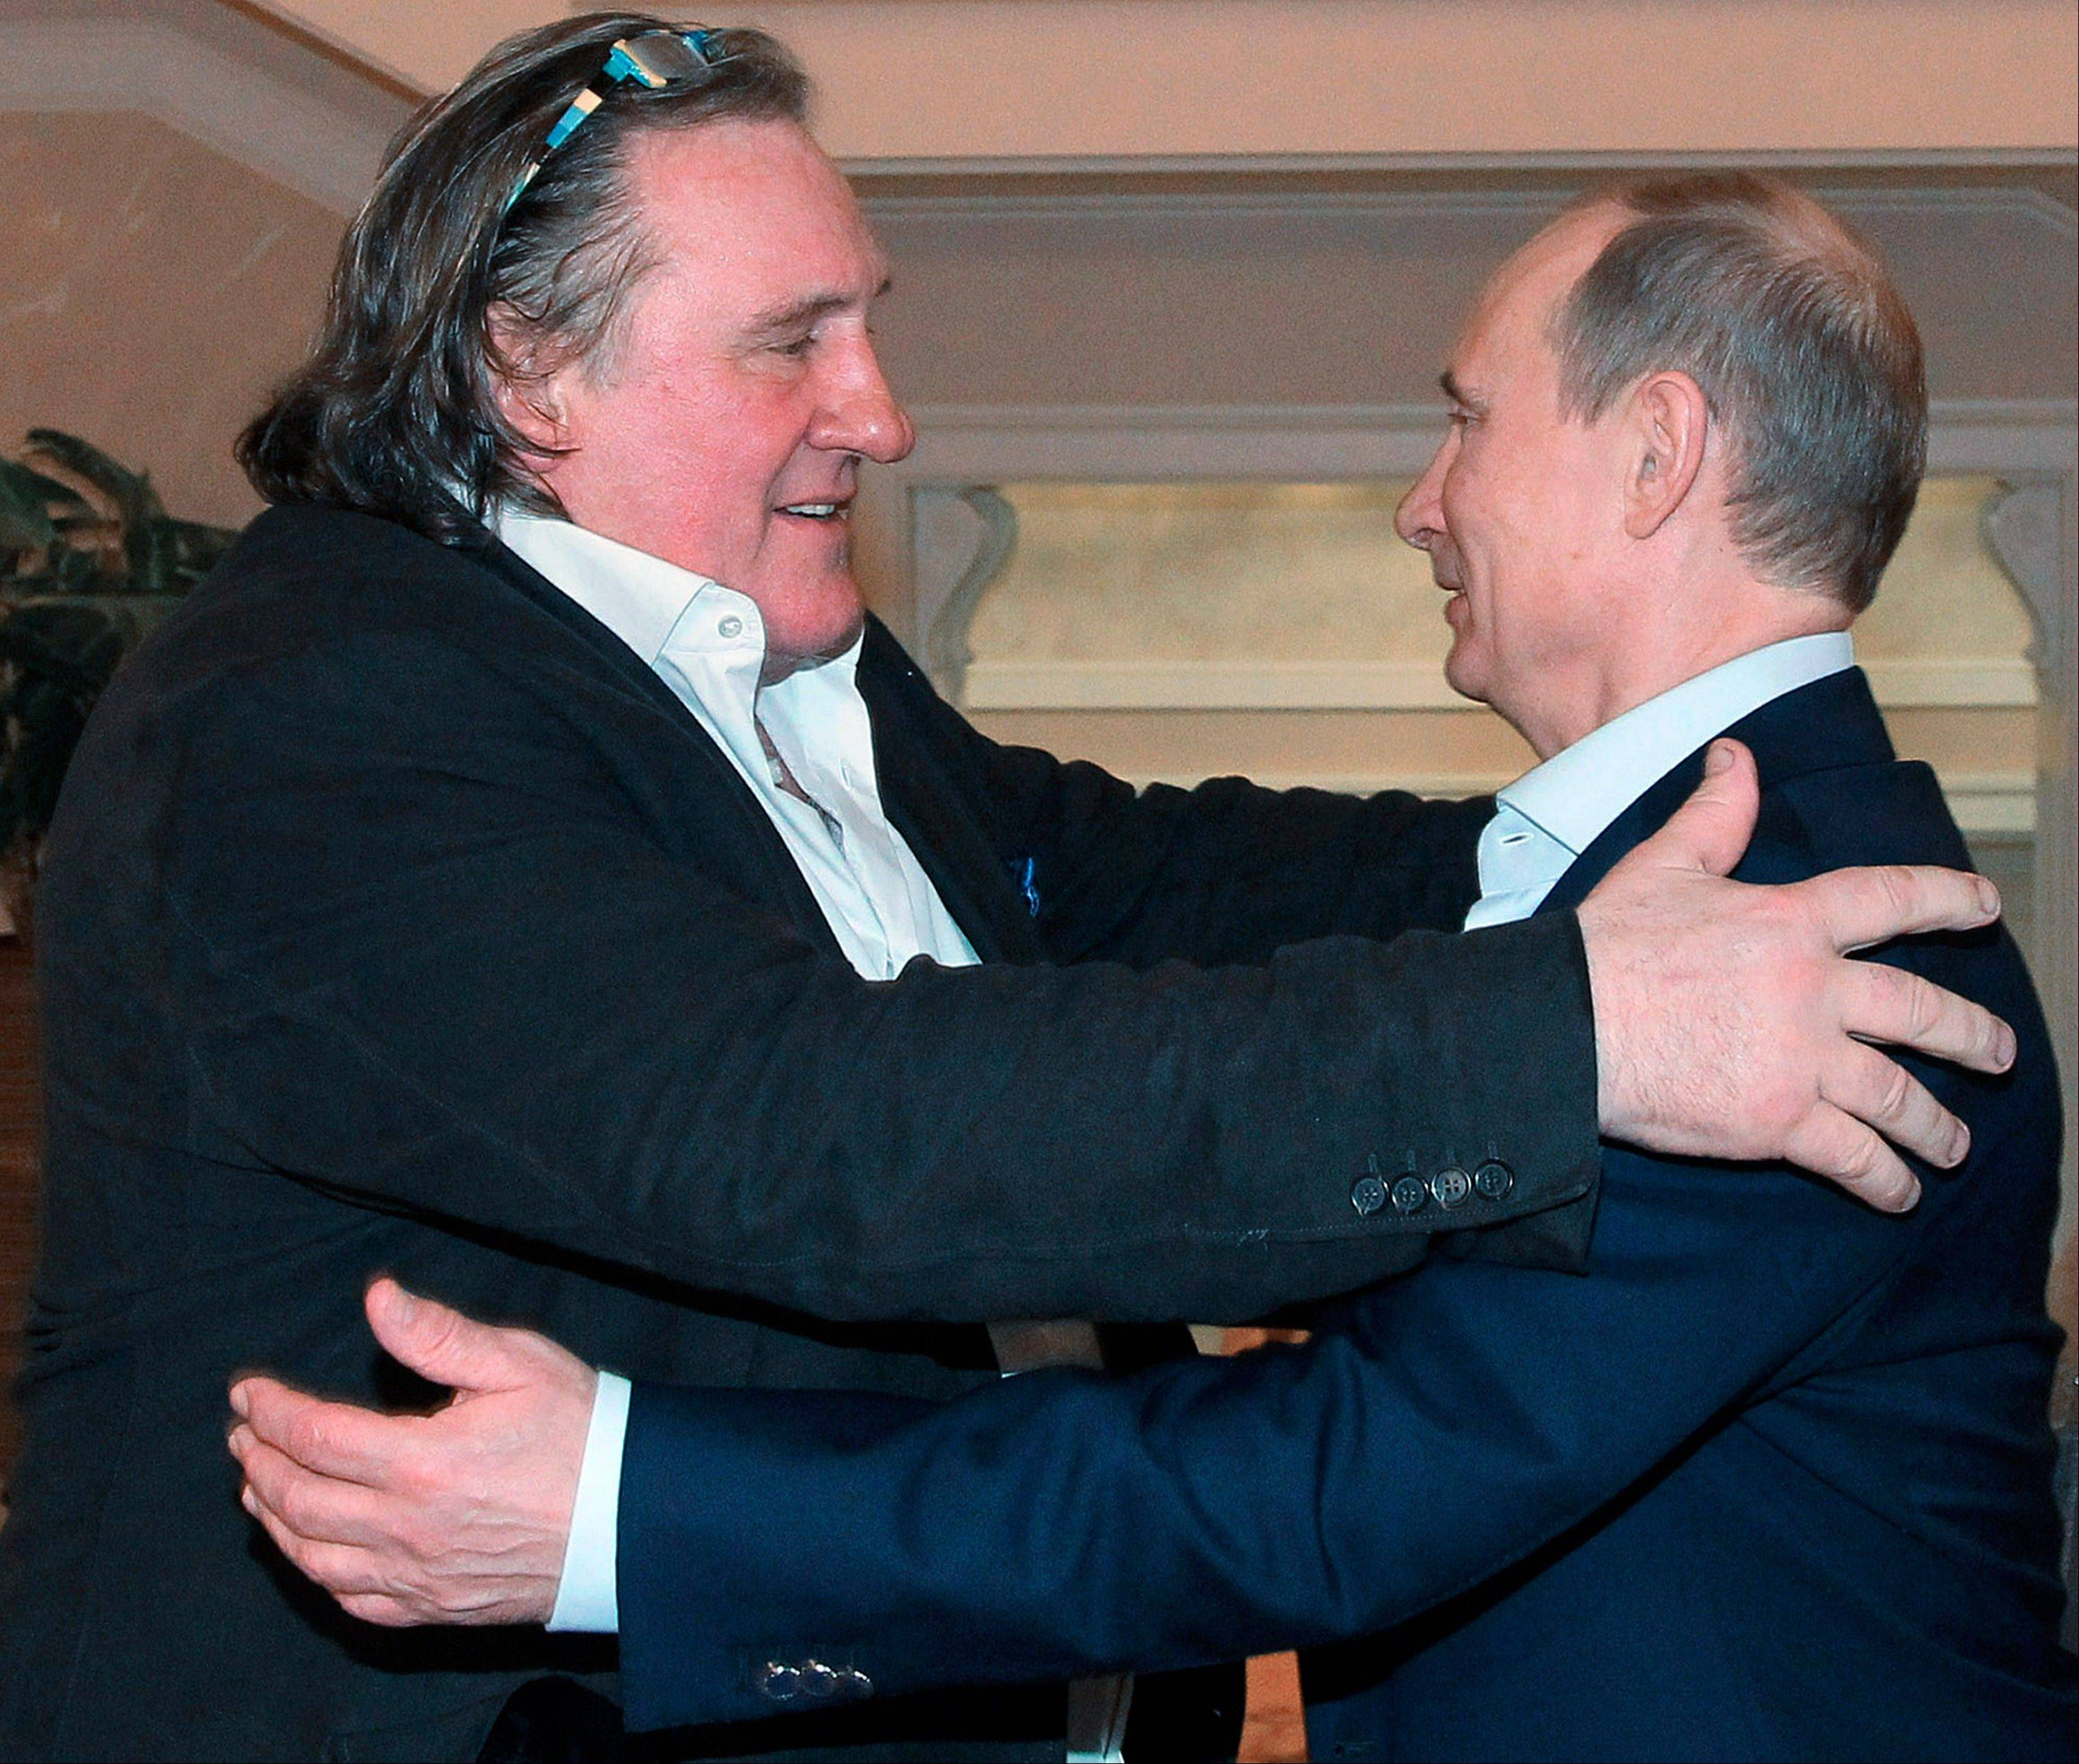 French actor Gerard Depardieu, left, greets Russian President Vladimir Putin after his arrival late Saturday at the president's residence in Sochi, the host city of the 2014 Winter Olympics.